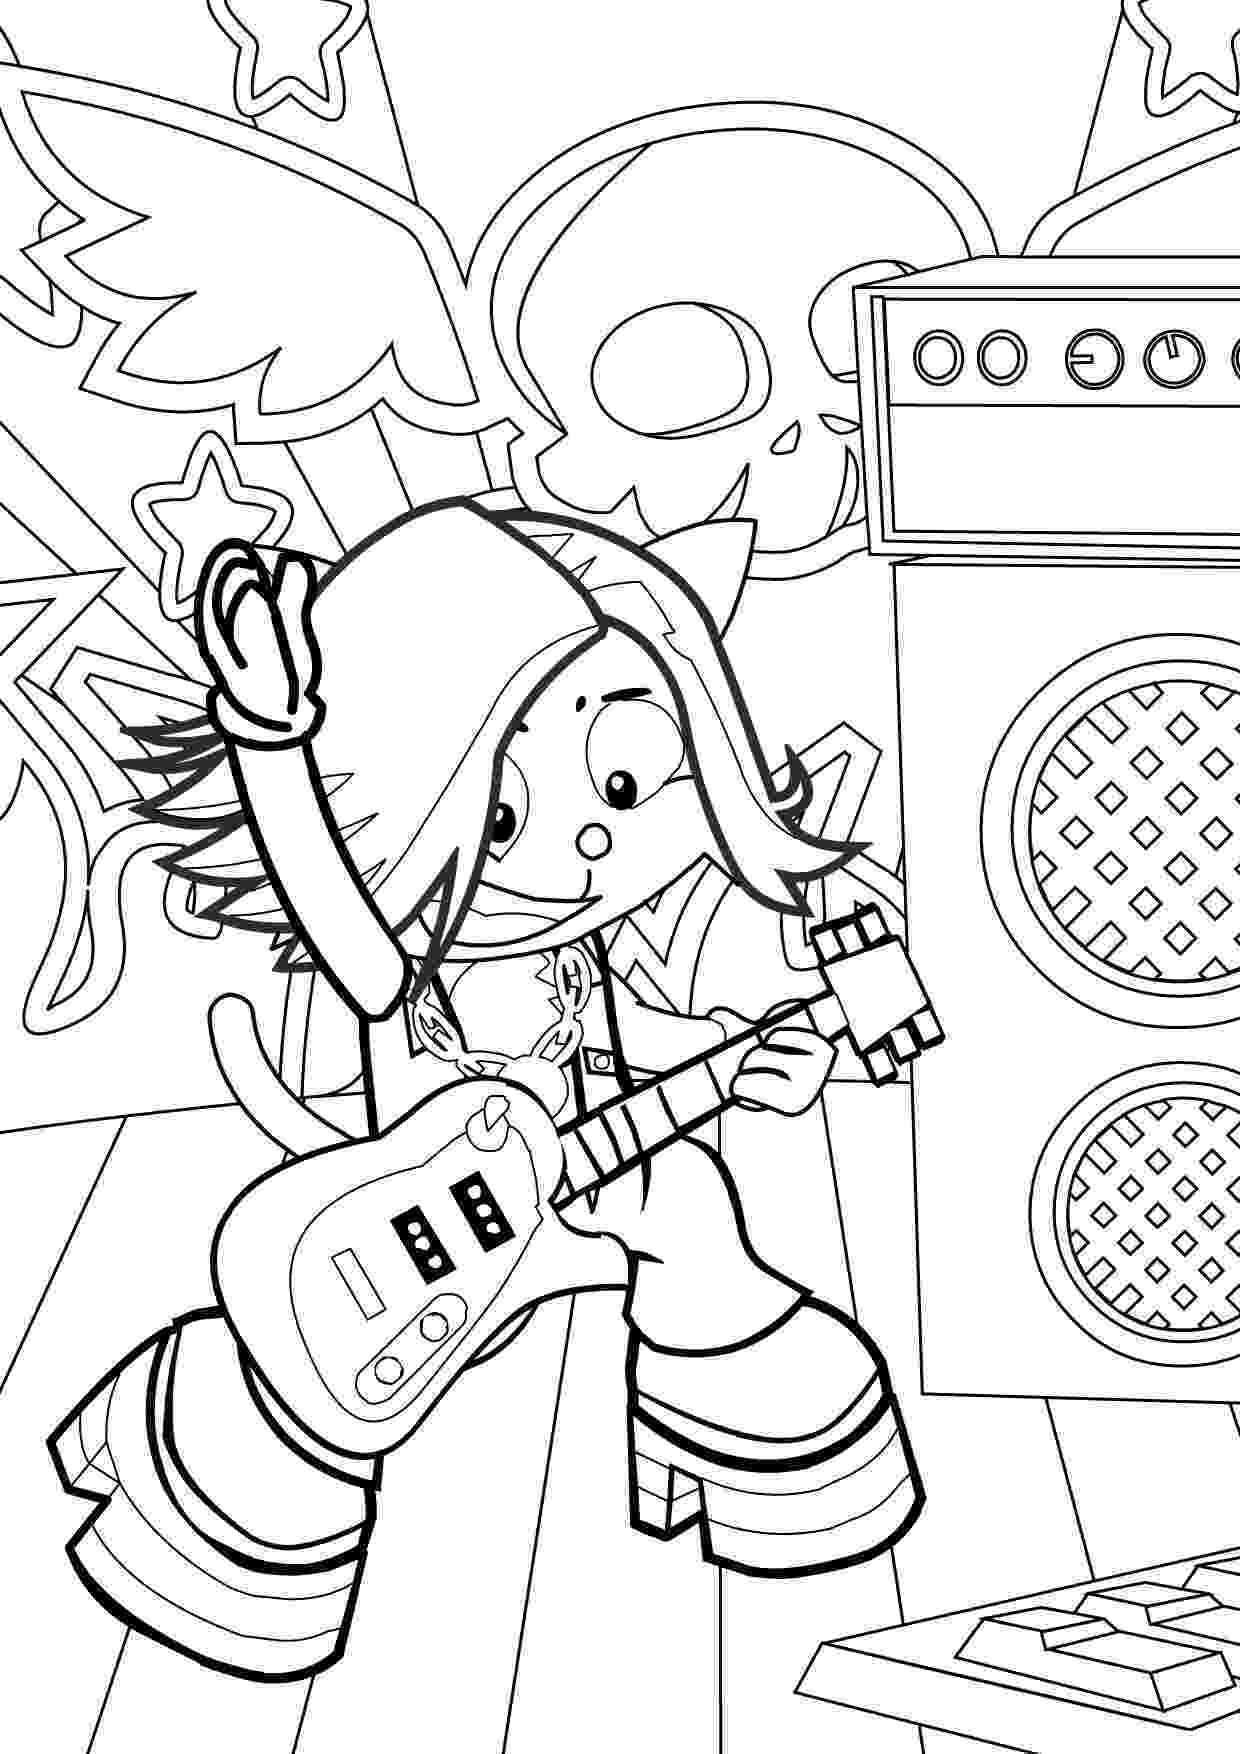 rock star coloring pages polly pocket coloring pages sketch coloring page pages star rock coloring